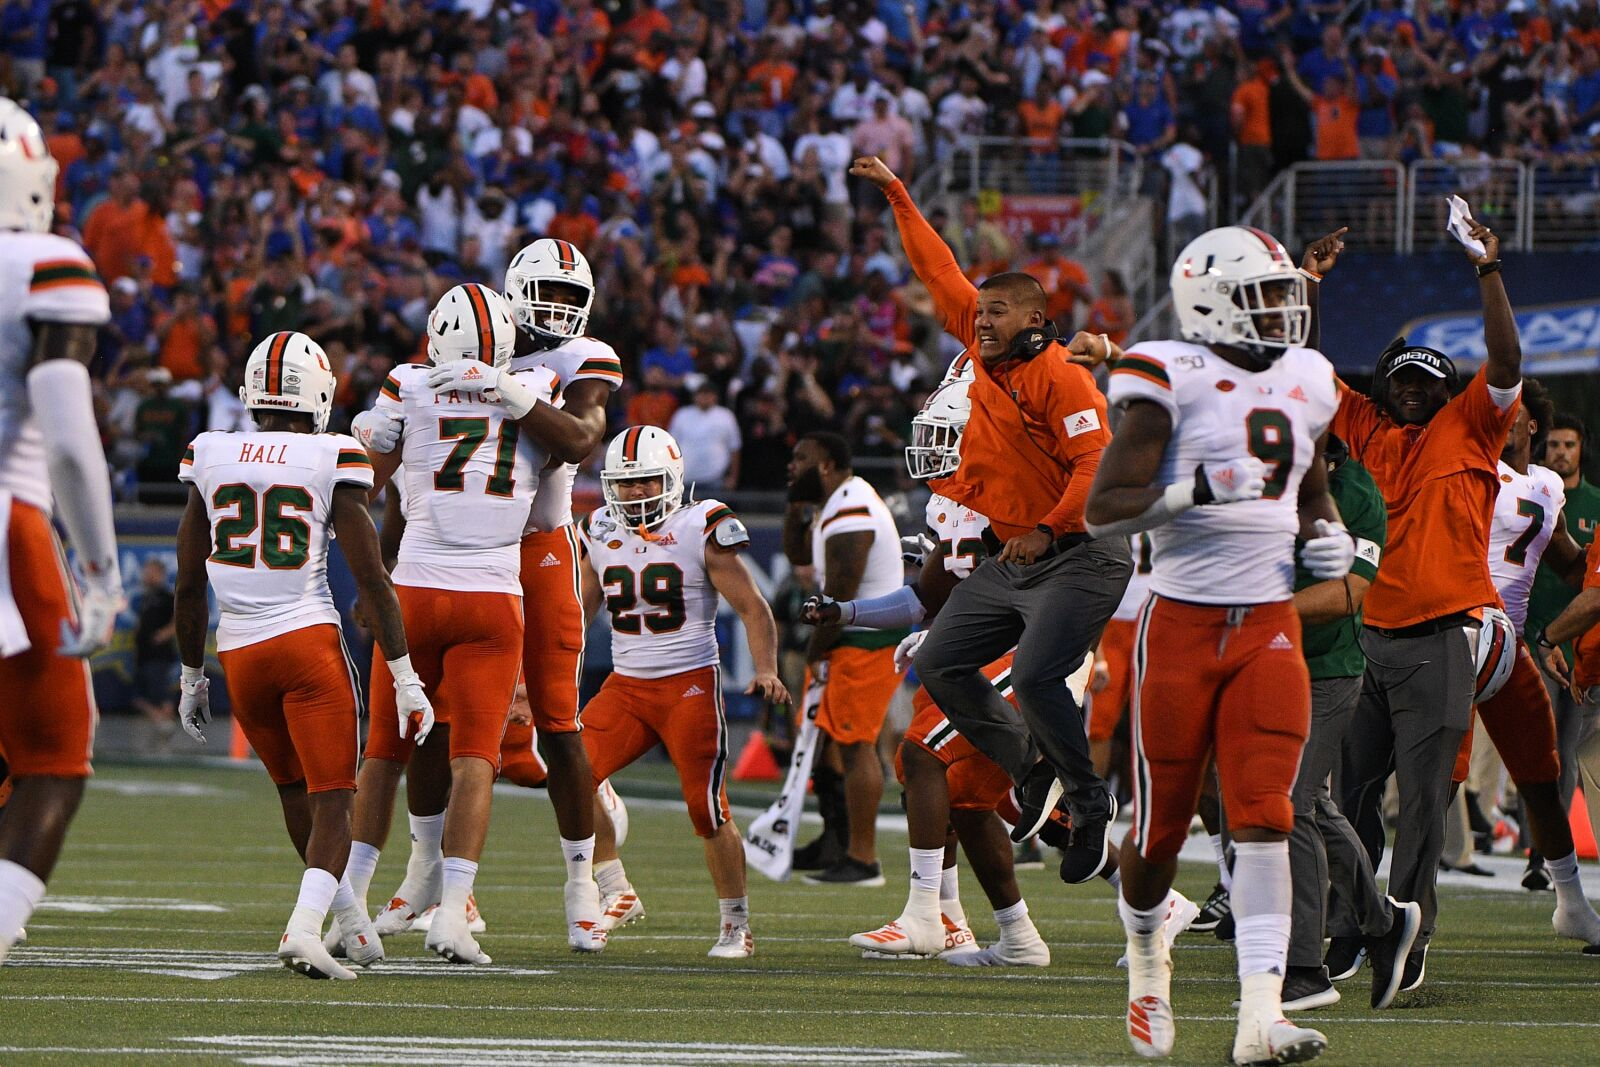 Miami football team needs to blockout distractions and focus on last two games